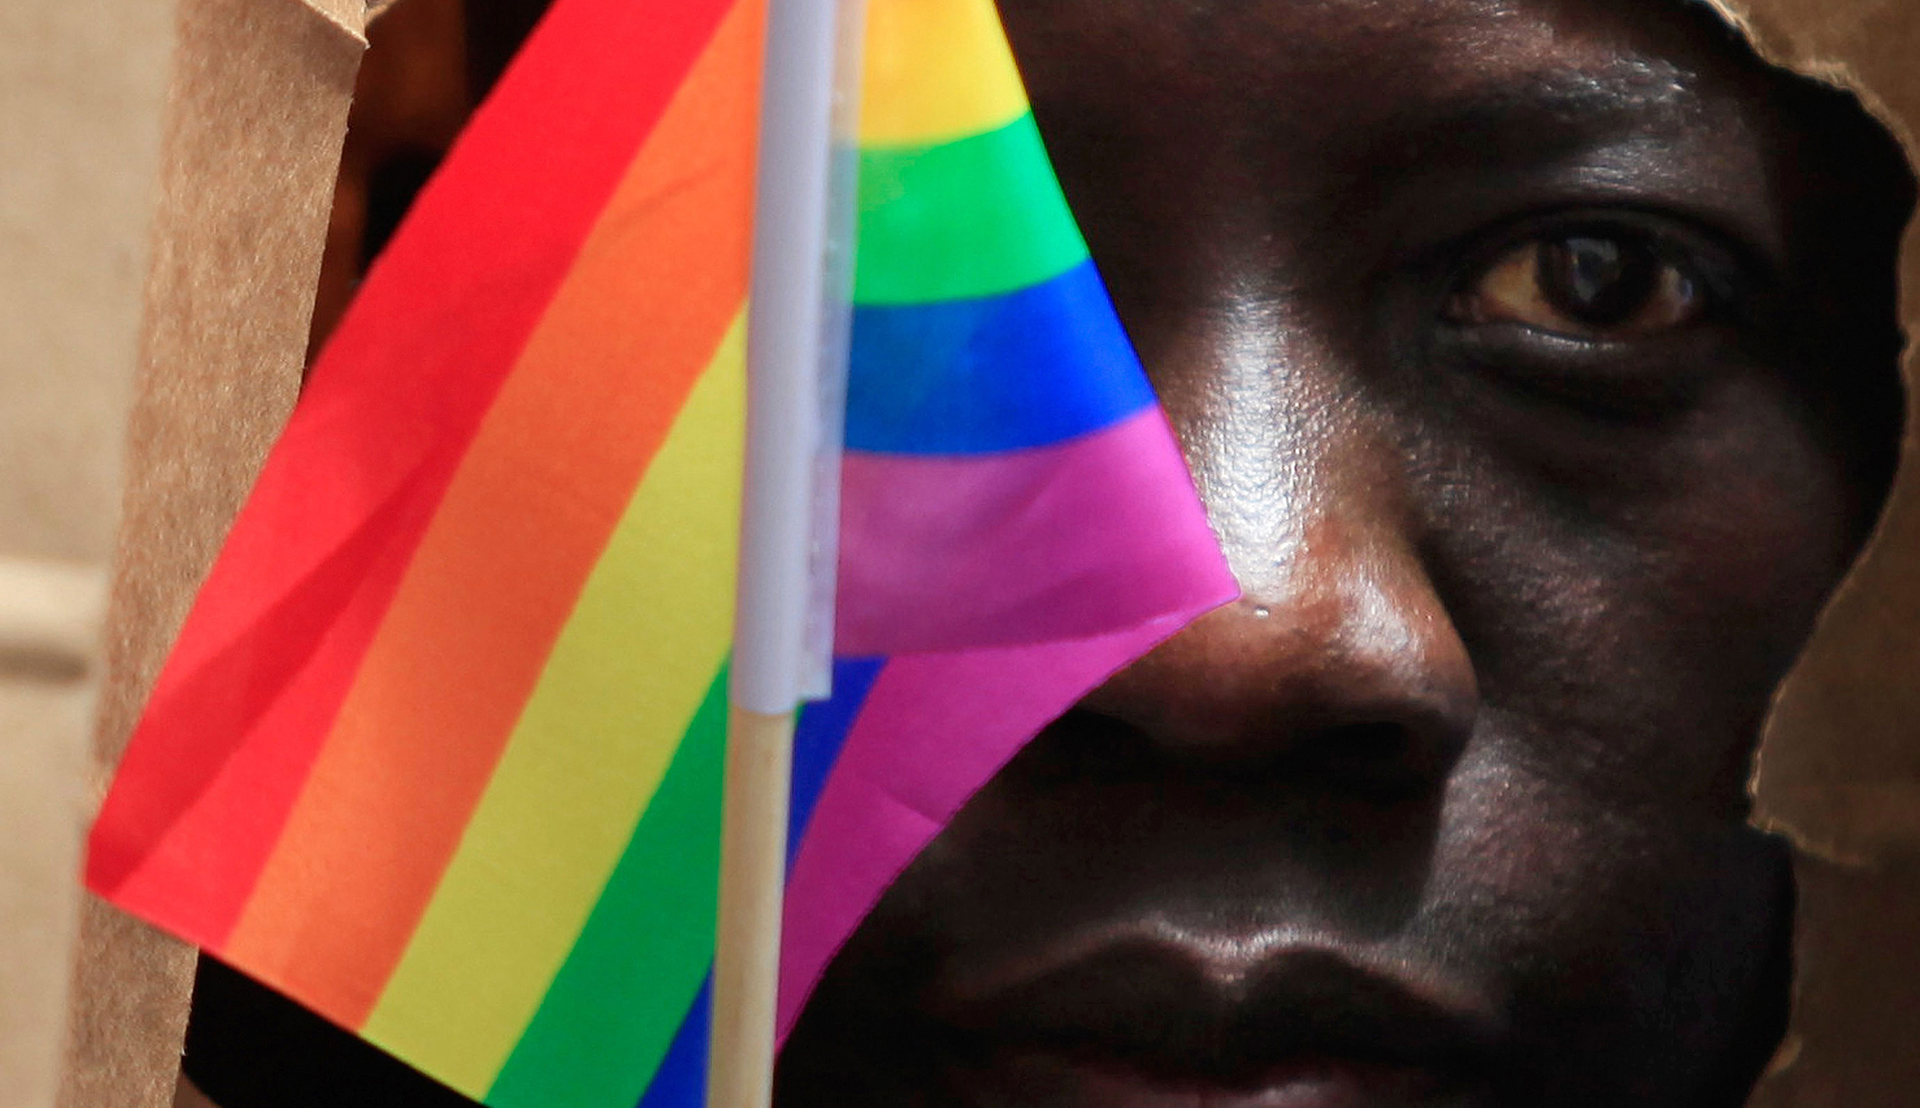 Rutgers Global - LGBT Rights Under Fire in Uganda: The Influence of U.S. Fundamentalism and the Repression of a Movement, close up of a man waving a small rainbow flag